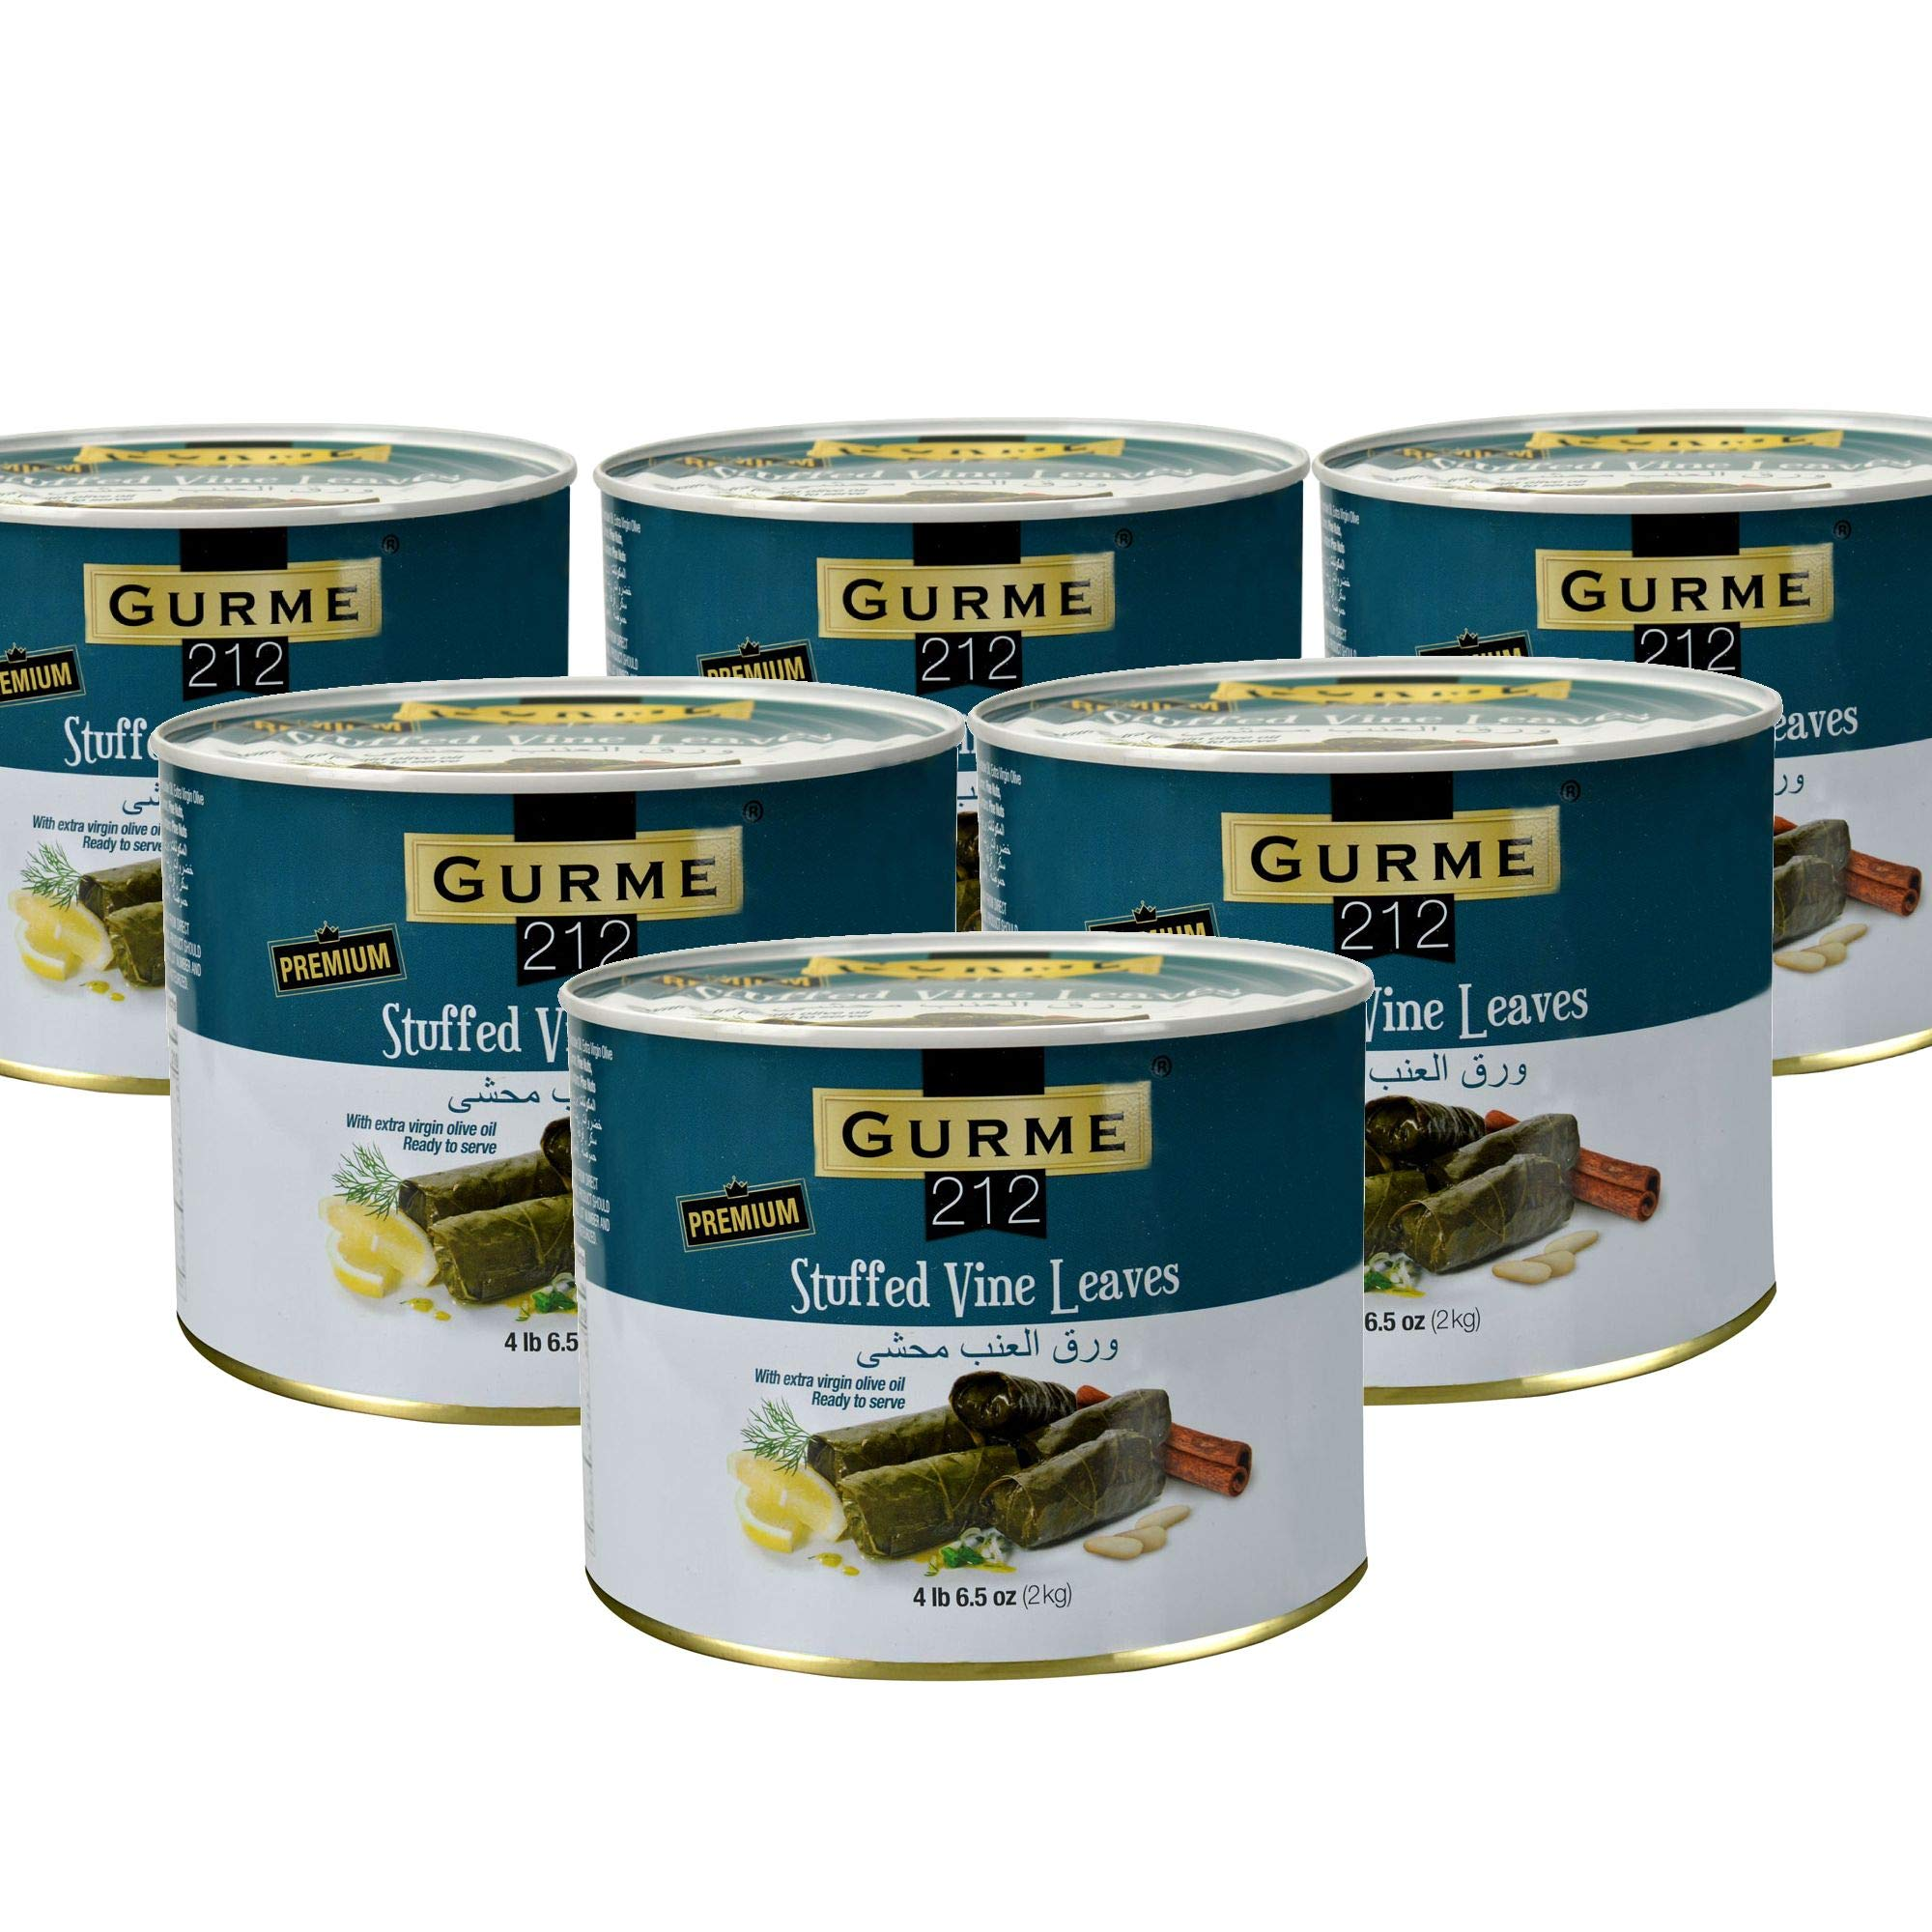 Gurme212 Premium (Bulk 6-pack) 4.4 lbs Stuffed Vine Leaves (Dolmades) with Olive Oil (1-can available) by GURME 212